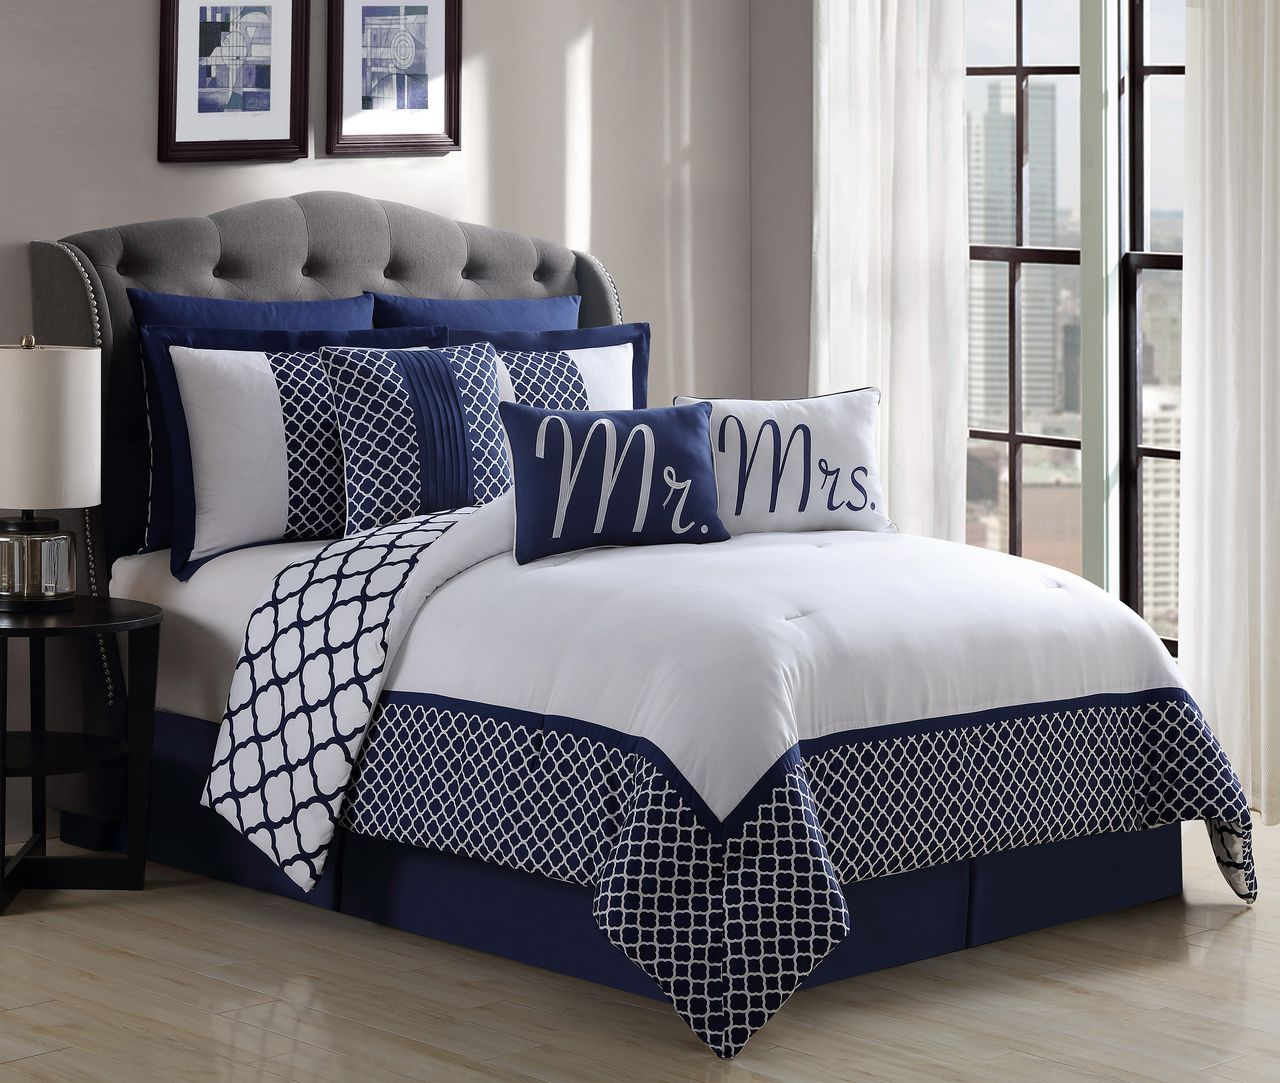 9 piece mr and mrs navy white reversible comforter set new bedroom stuff pinterest. Black Bedroom Furniture Sets. Home Design Ideas